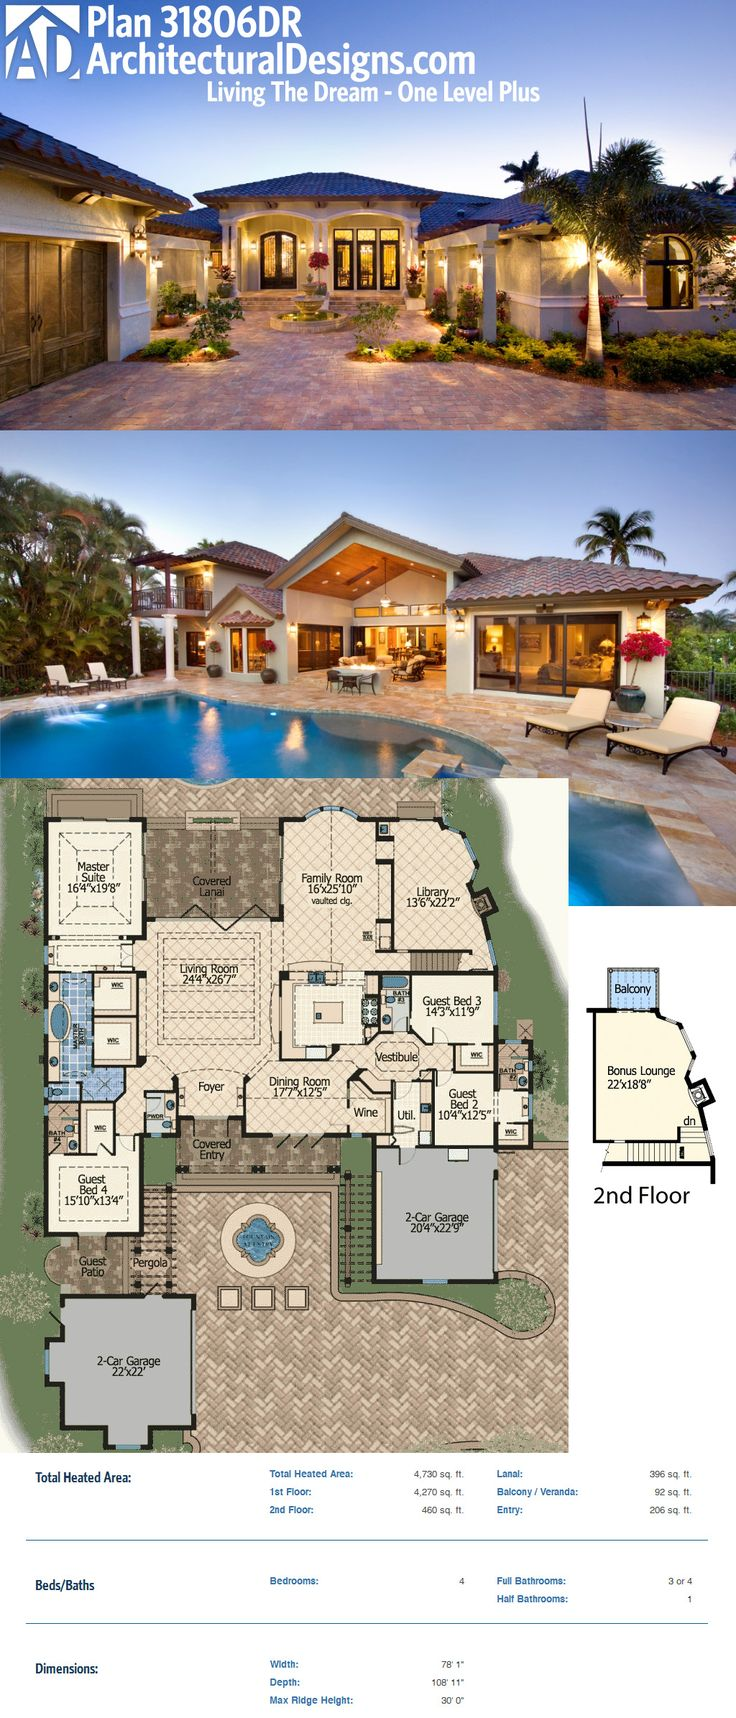 Best 25+ One level homes ideas on Pinterest | One level ...